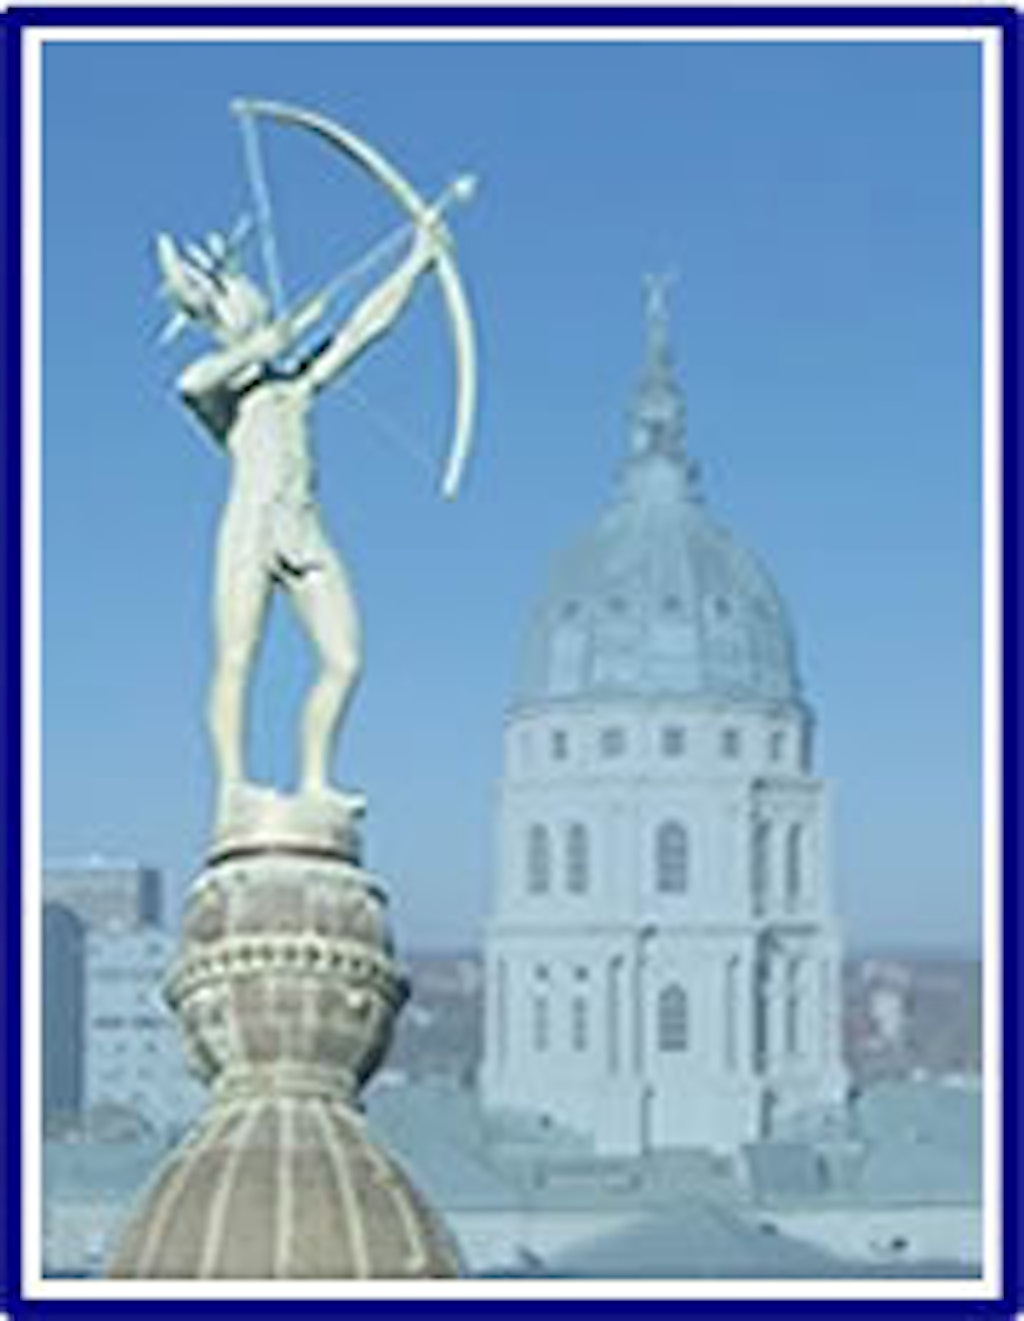 "Ad Astra per Aspera Statue on the Capitol Dome. Ad Astra per Aspera, meaning ""To the Stars through Difficulty"" is the Kansas State Motto. Photo by David Cook."